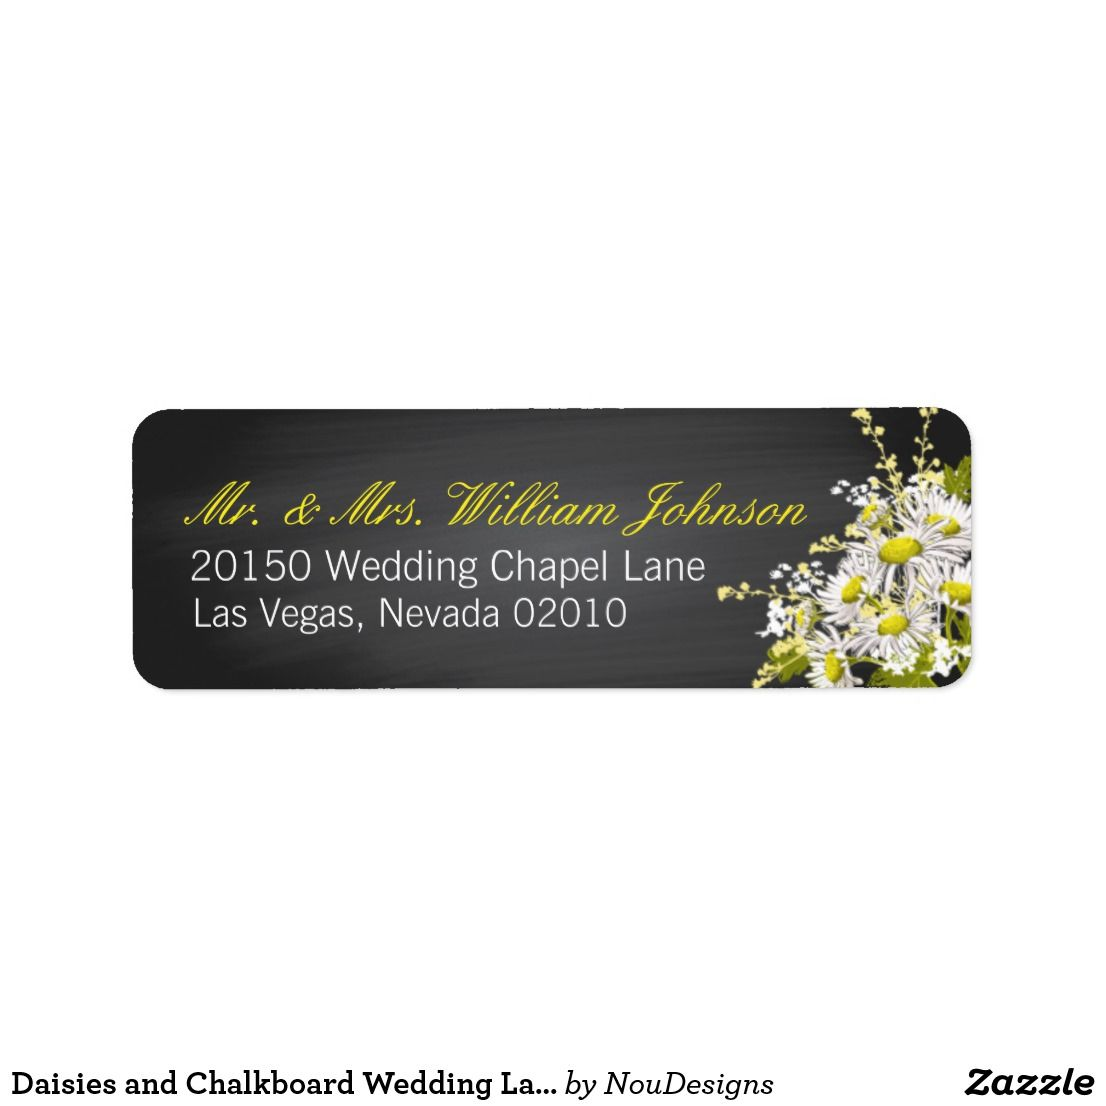 Daisies and Chalkboard Wedding Label Daisy bouquet and chalkboard ...